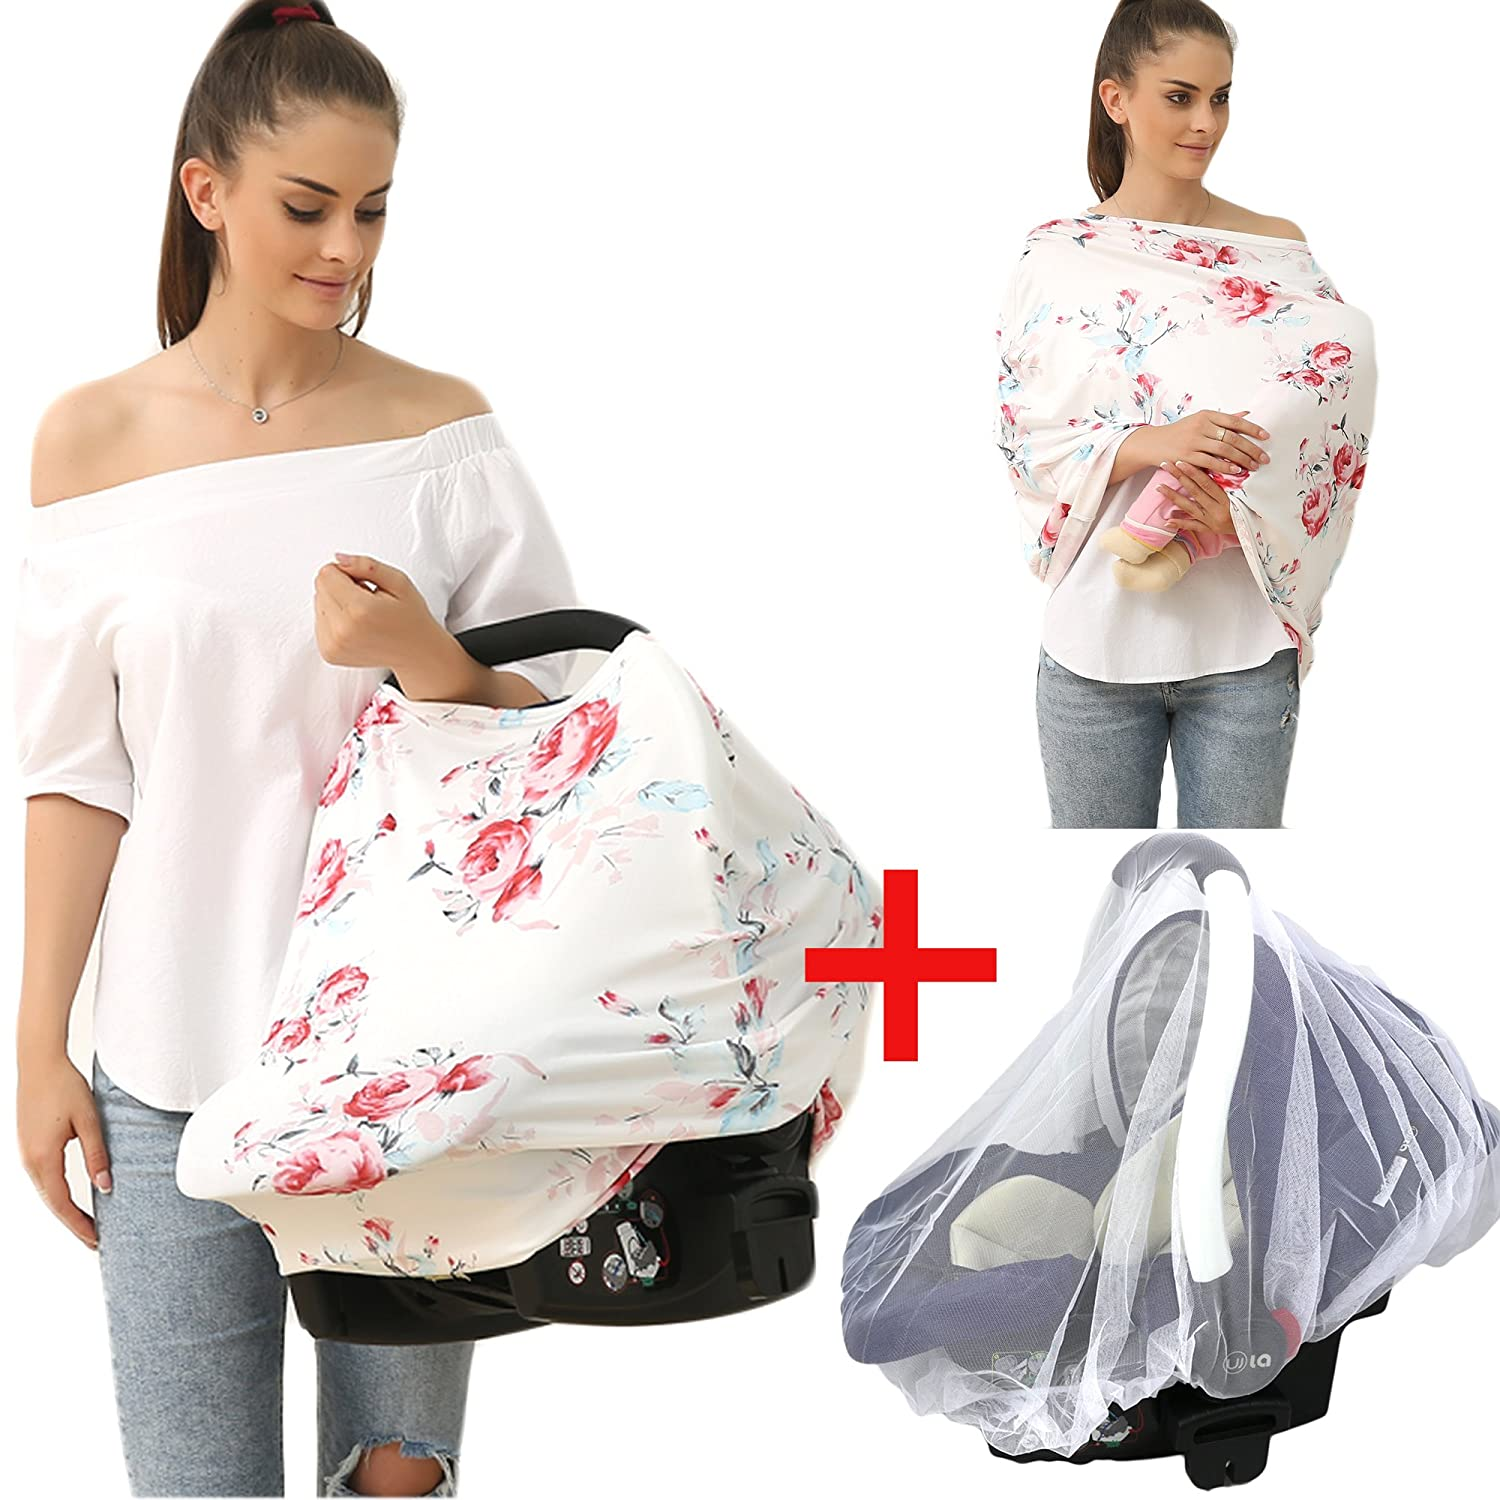 Privacy Baby car seat Covers - Stroller Canopy Nursing and Breastfeeding Covers, Multi-use carseat Canopy, for Boys and Girls Shower Gift (Print flower-02) Hicoco